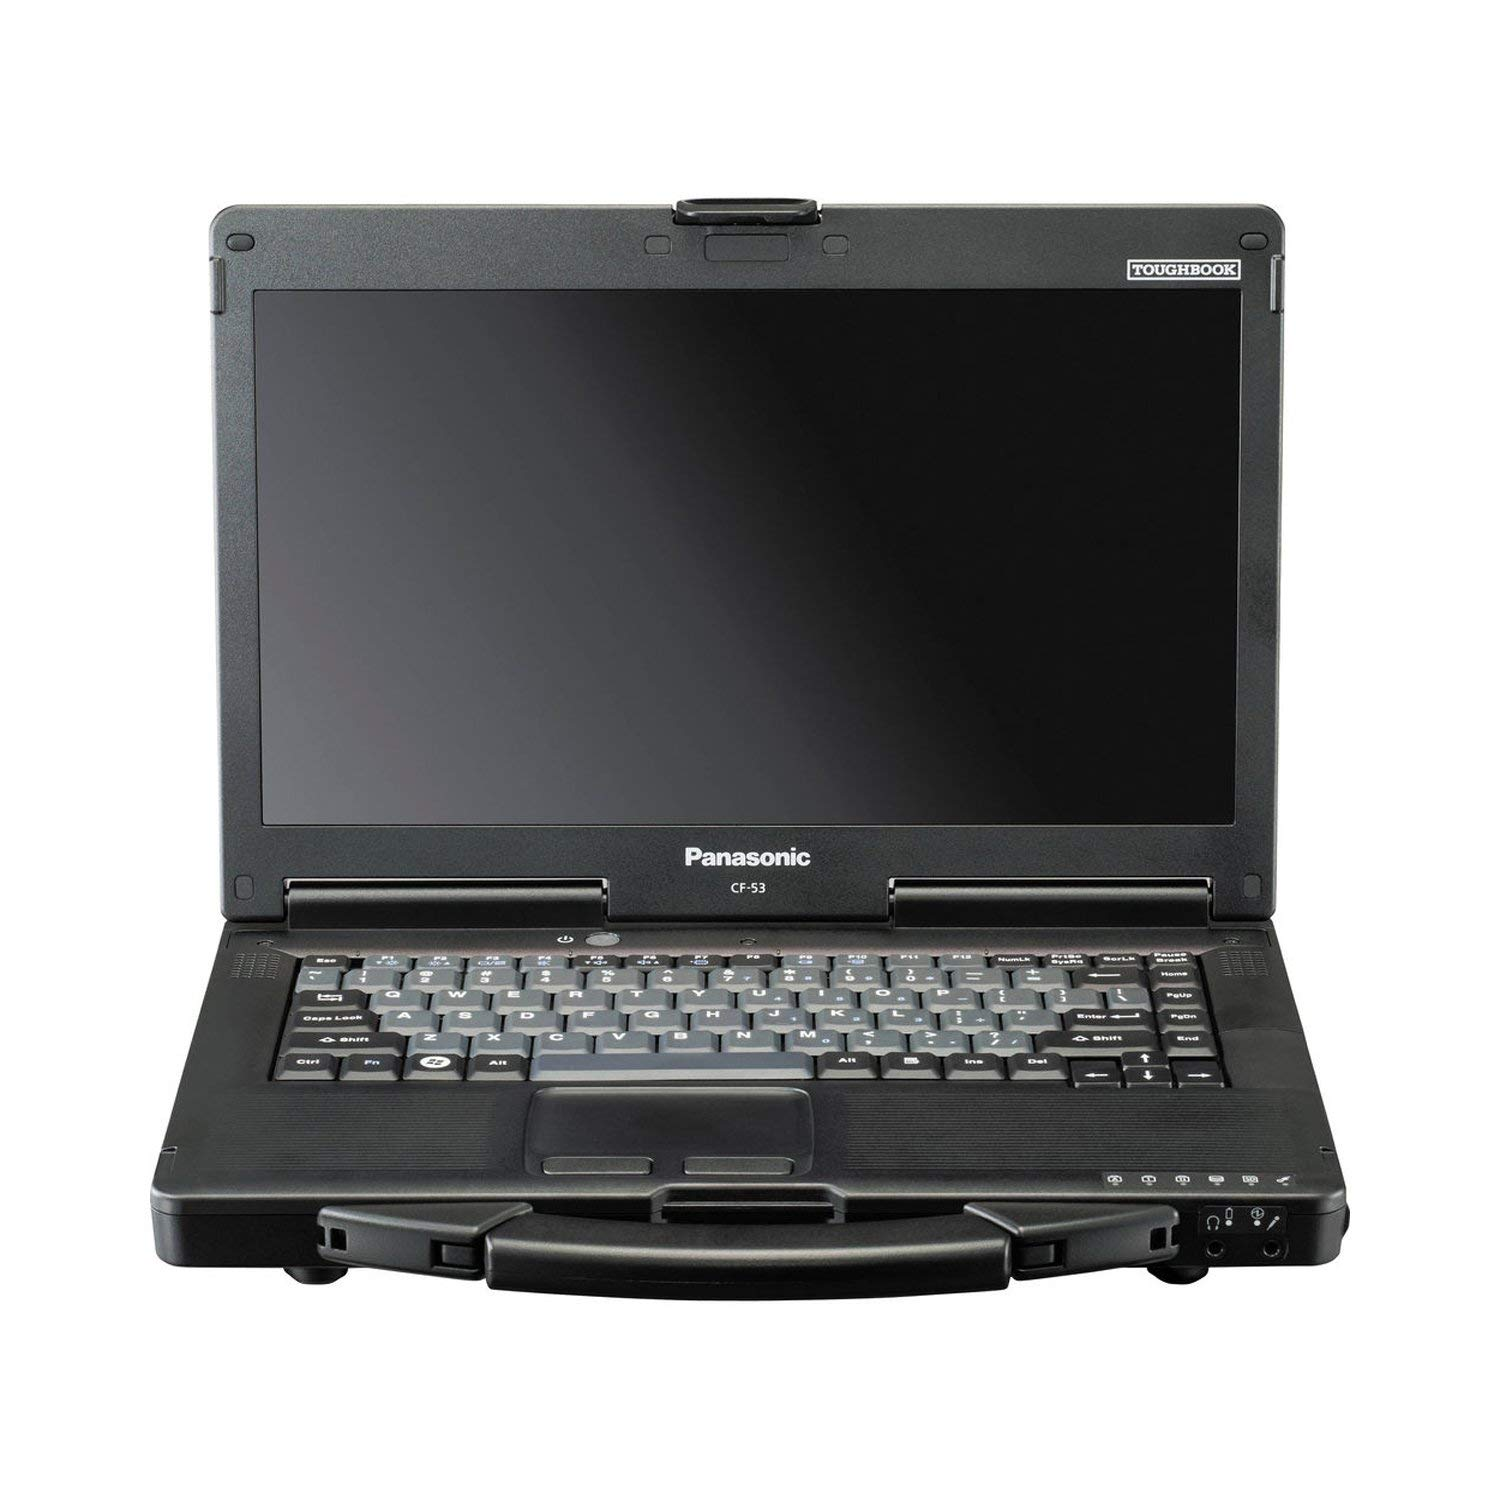 "Panasonic Toughbook CF-53 14"" Notebook Laptop - Intel Core i5-4310U 2.0 GHz, 8GB Memory, 256GB SSD, Windows 10 Pro (Renewed)"